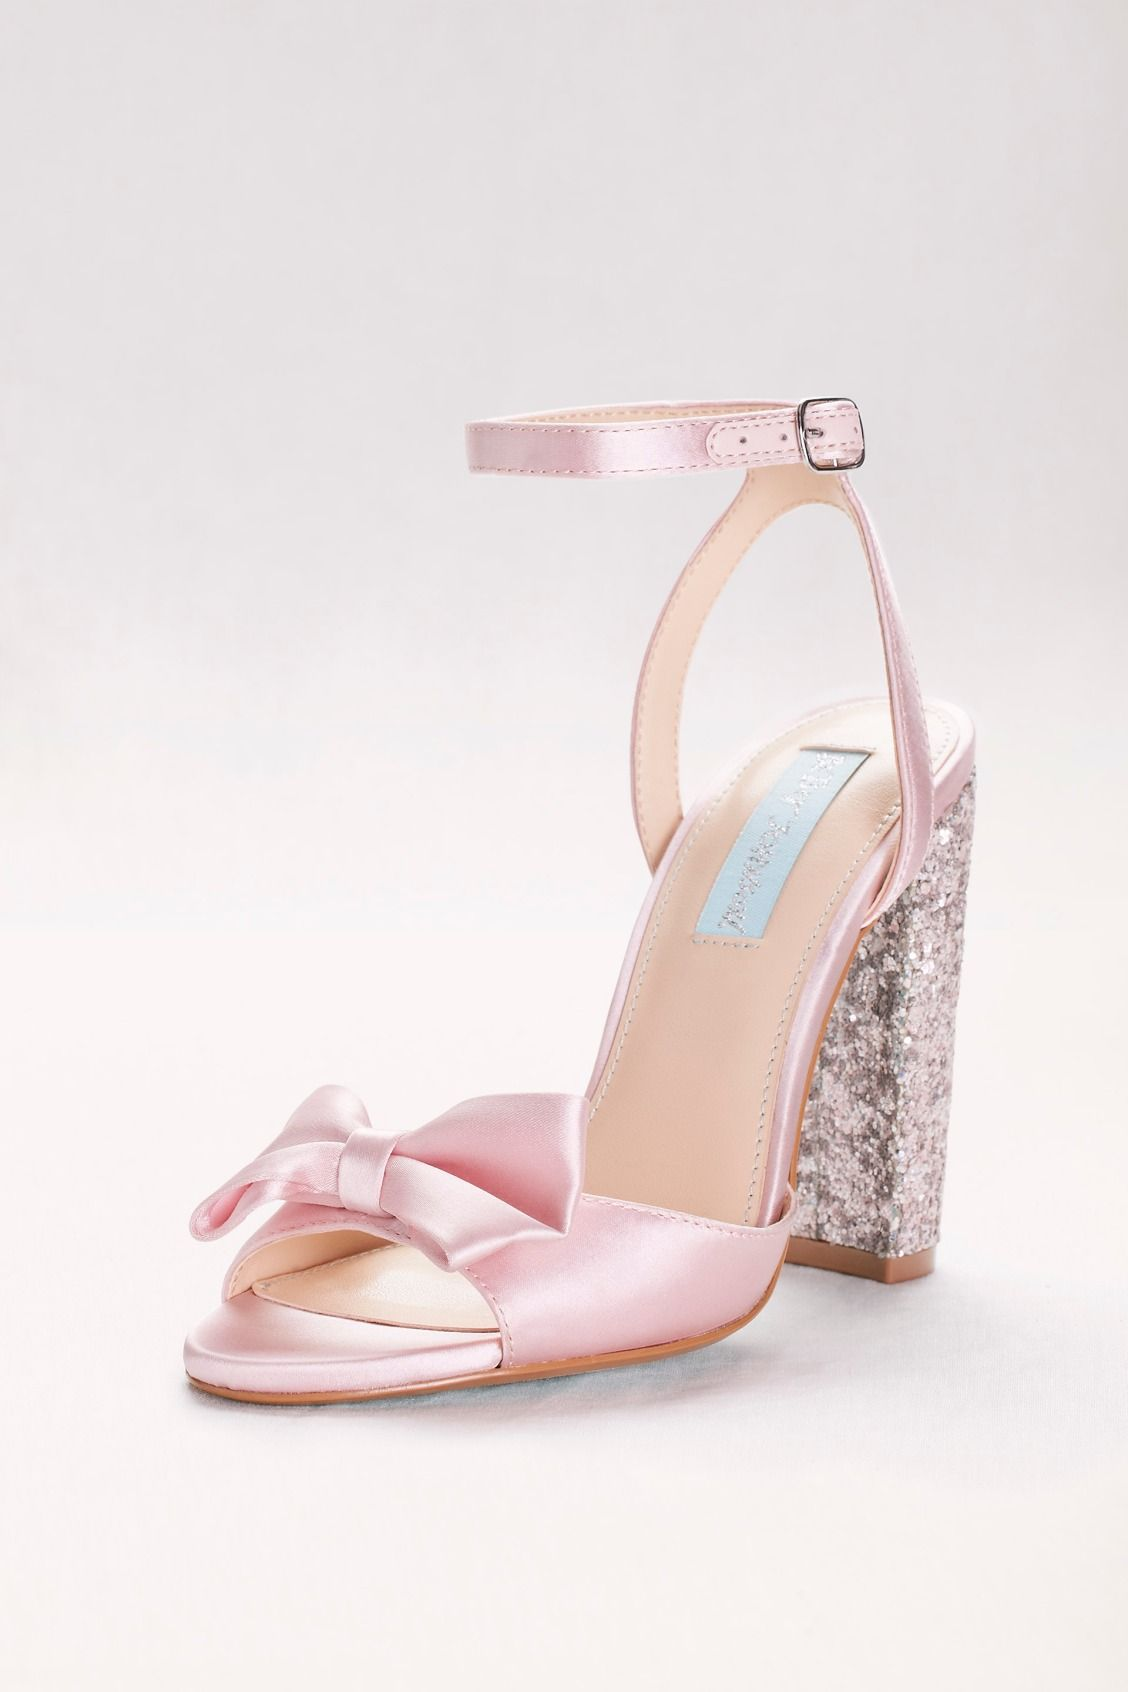 600dd5bfb4b877 Blush Bow-Front Satin Pumps with Glitter Block Heel by Blue by Betsey  Johnson available at David s Bridal